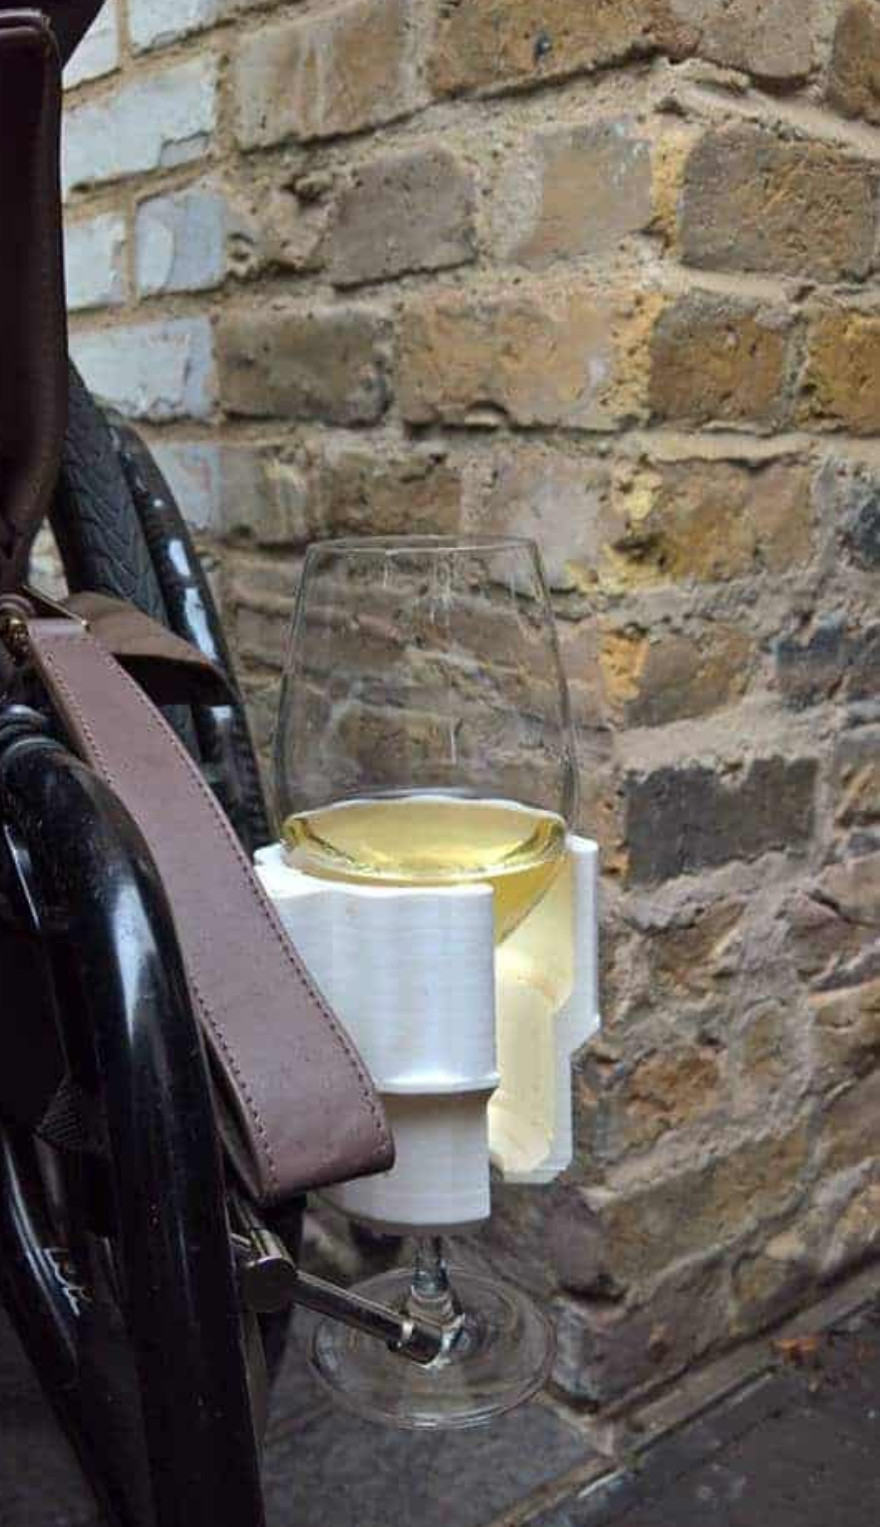 White DRINK universal glass holder attached to wheelchair, holding wine glass